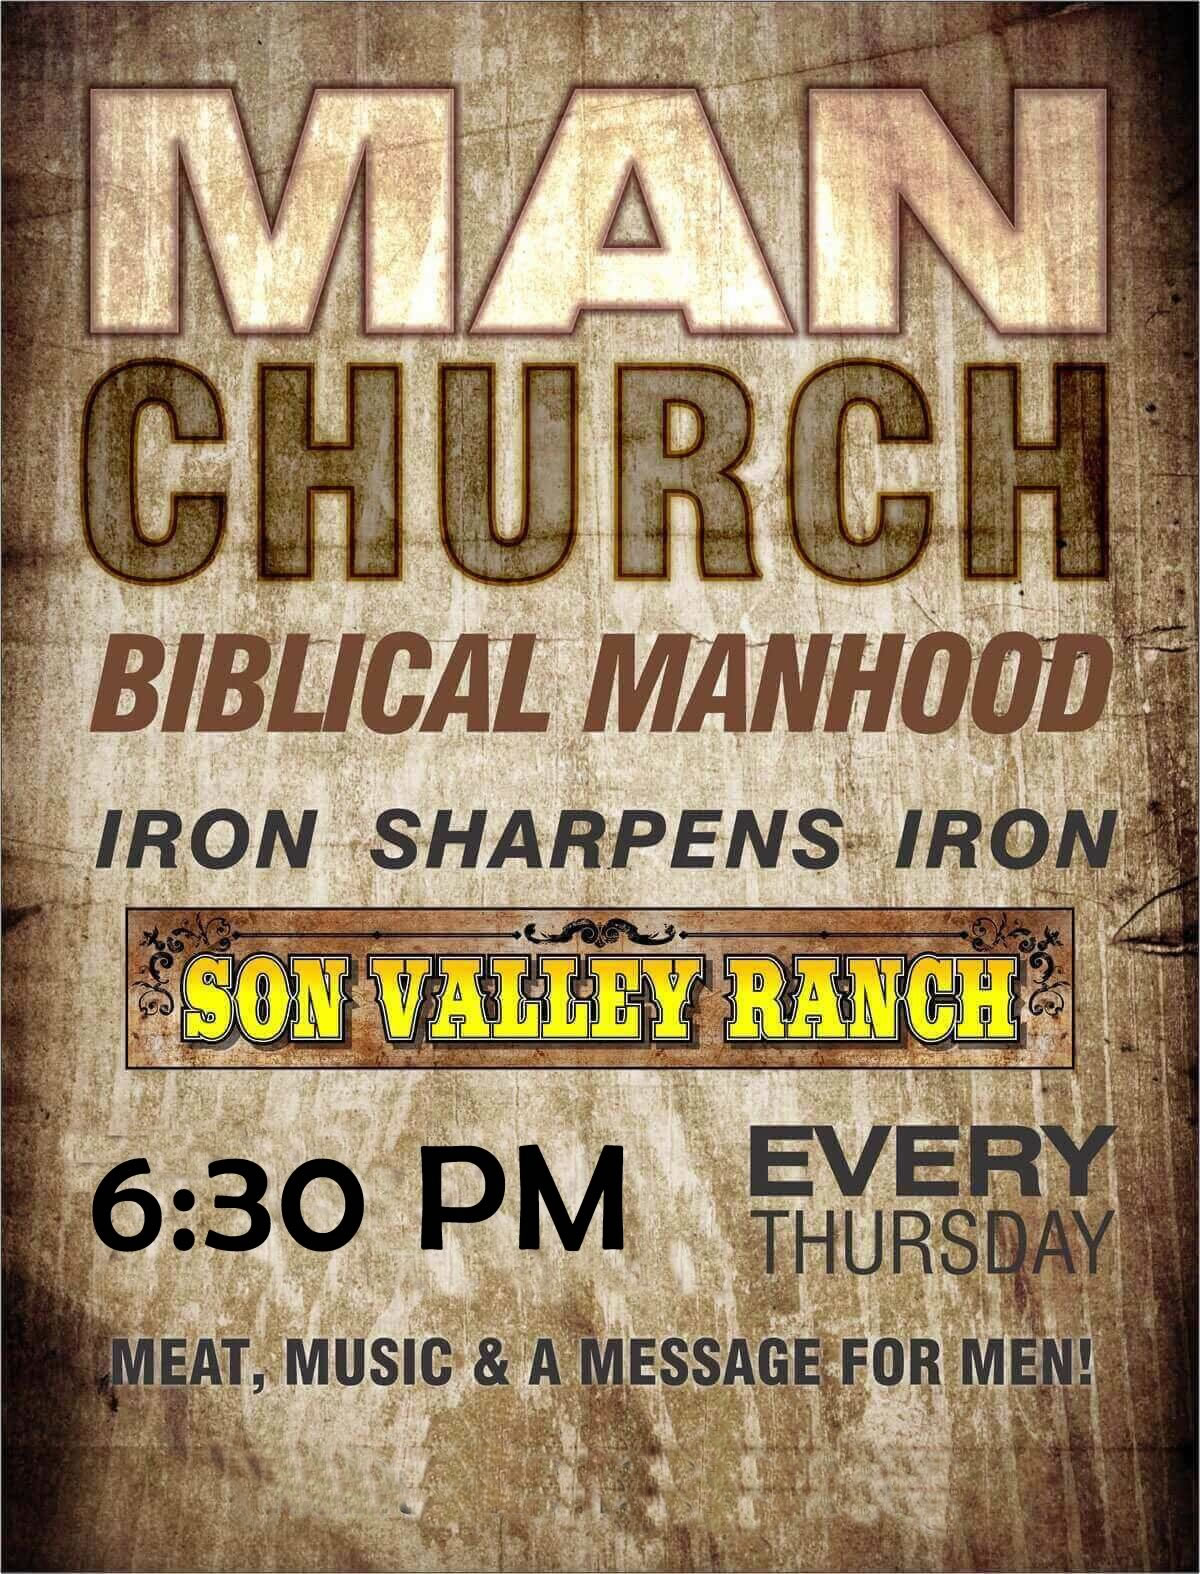 Man Church in Victoria Texas every Wednesday at 7pm